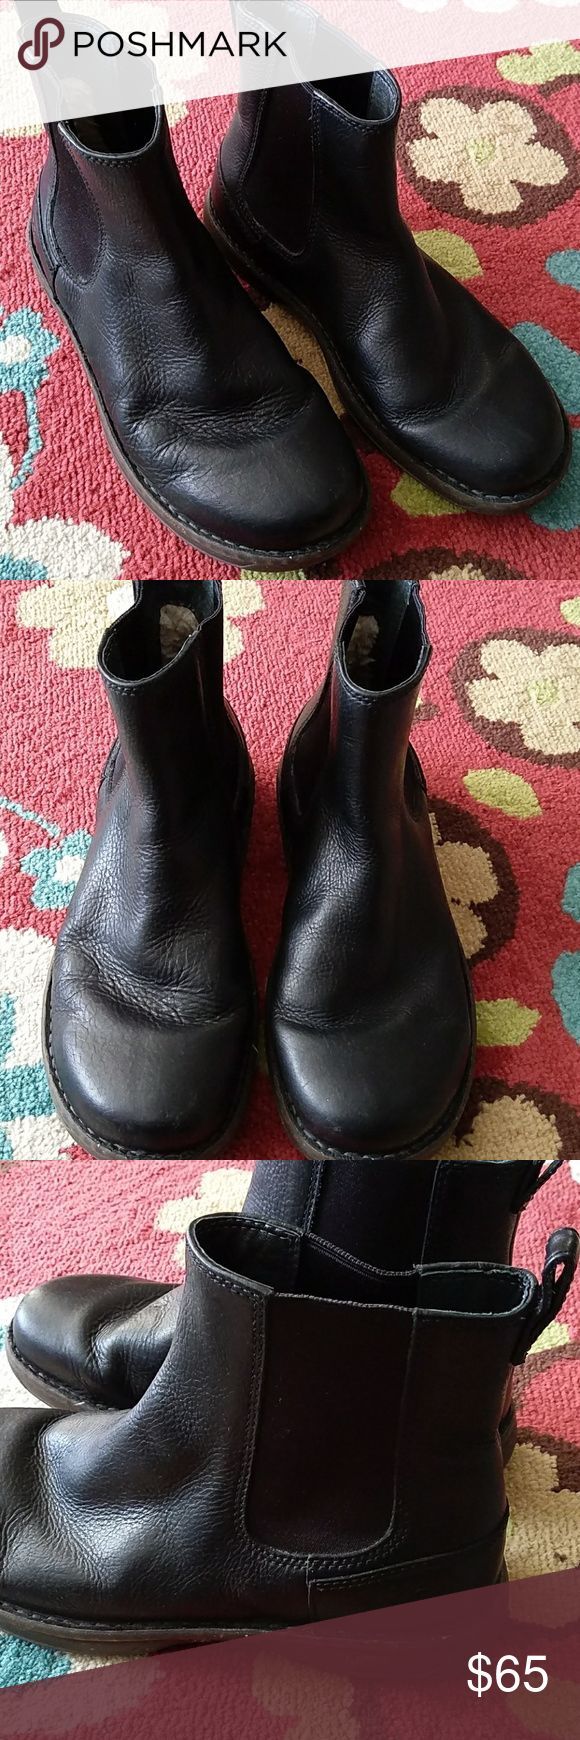 GENUINE UGG MENS UNISEX BLACK ANKLE BOOTS AUTHENTIC UGG BRAND! MENS SIZE 8 OR COULD FIT LADIES TOO. I WEAR A 9.5 IN LADIES SHOES AND I HAD SOME EXTRA ROOM WHEN I TRIED THESE ON SO THEY WOULD PROBABLY FIT A LADY SIZE 10. BLACK LEATHER WITH ELASTIC INSERTS FOR EASY PULL ON Excellent gently worn condition SPECKLE RUBBER SOLE BUNDLE WITH OTHER ITEMS FOR EVEN BIGGER SAVINGS! QUICK SHIPPING! UGG Shoes Boots